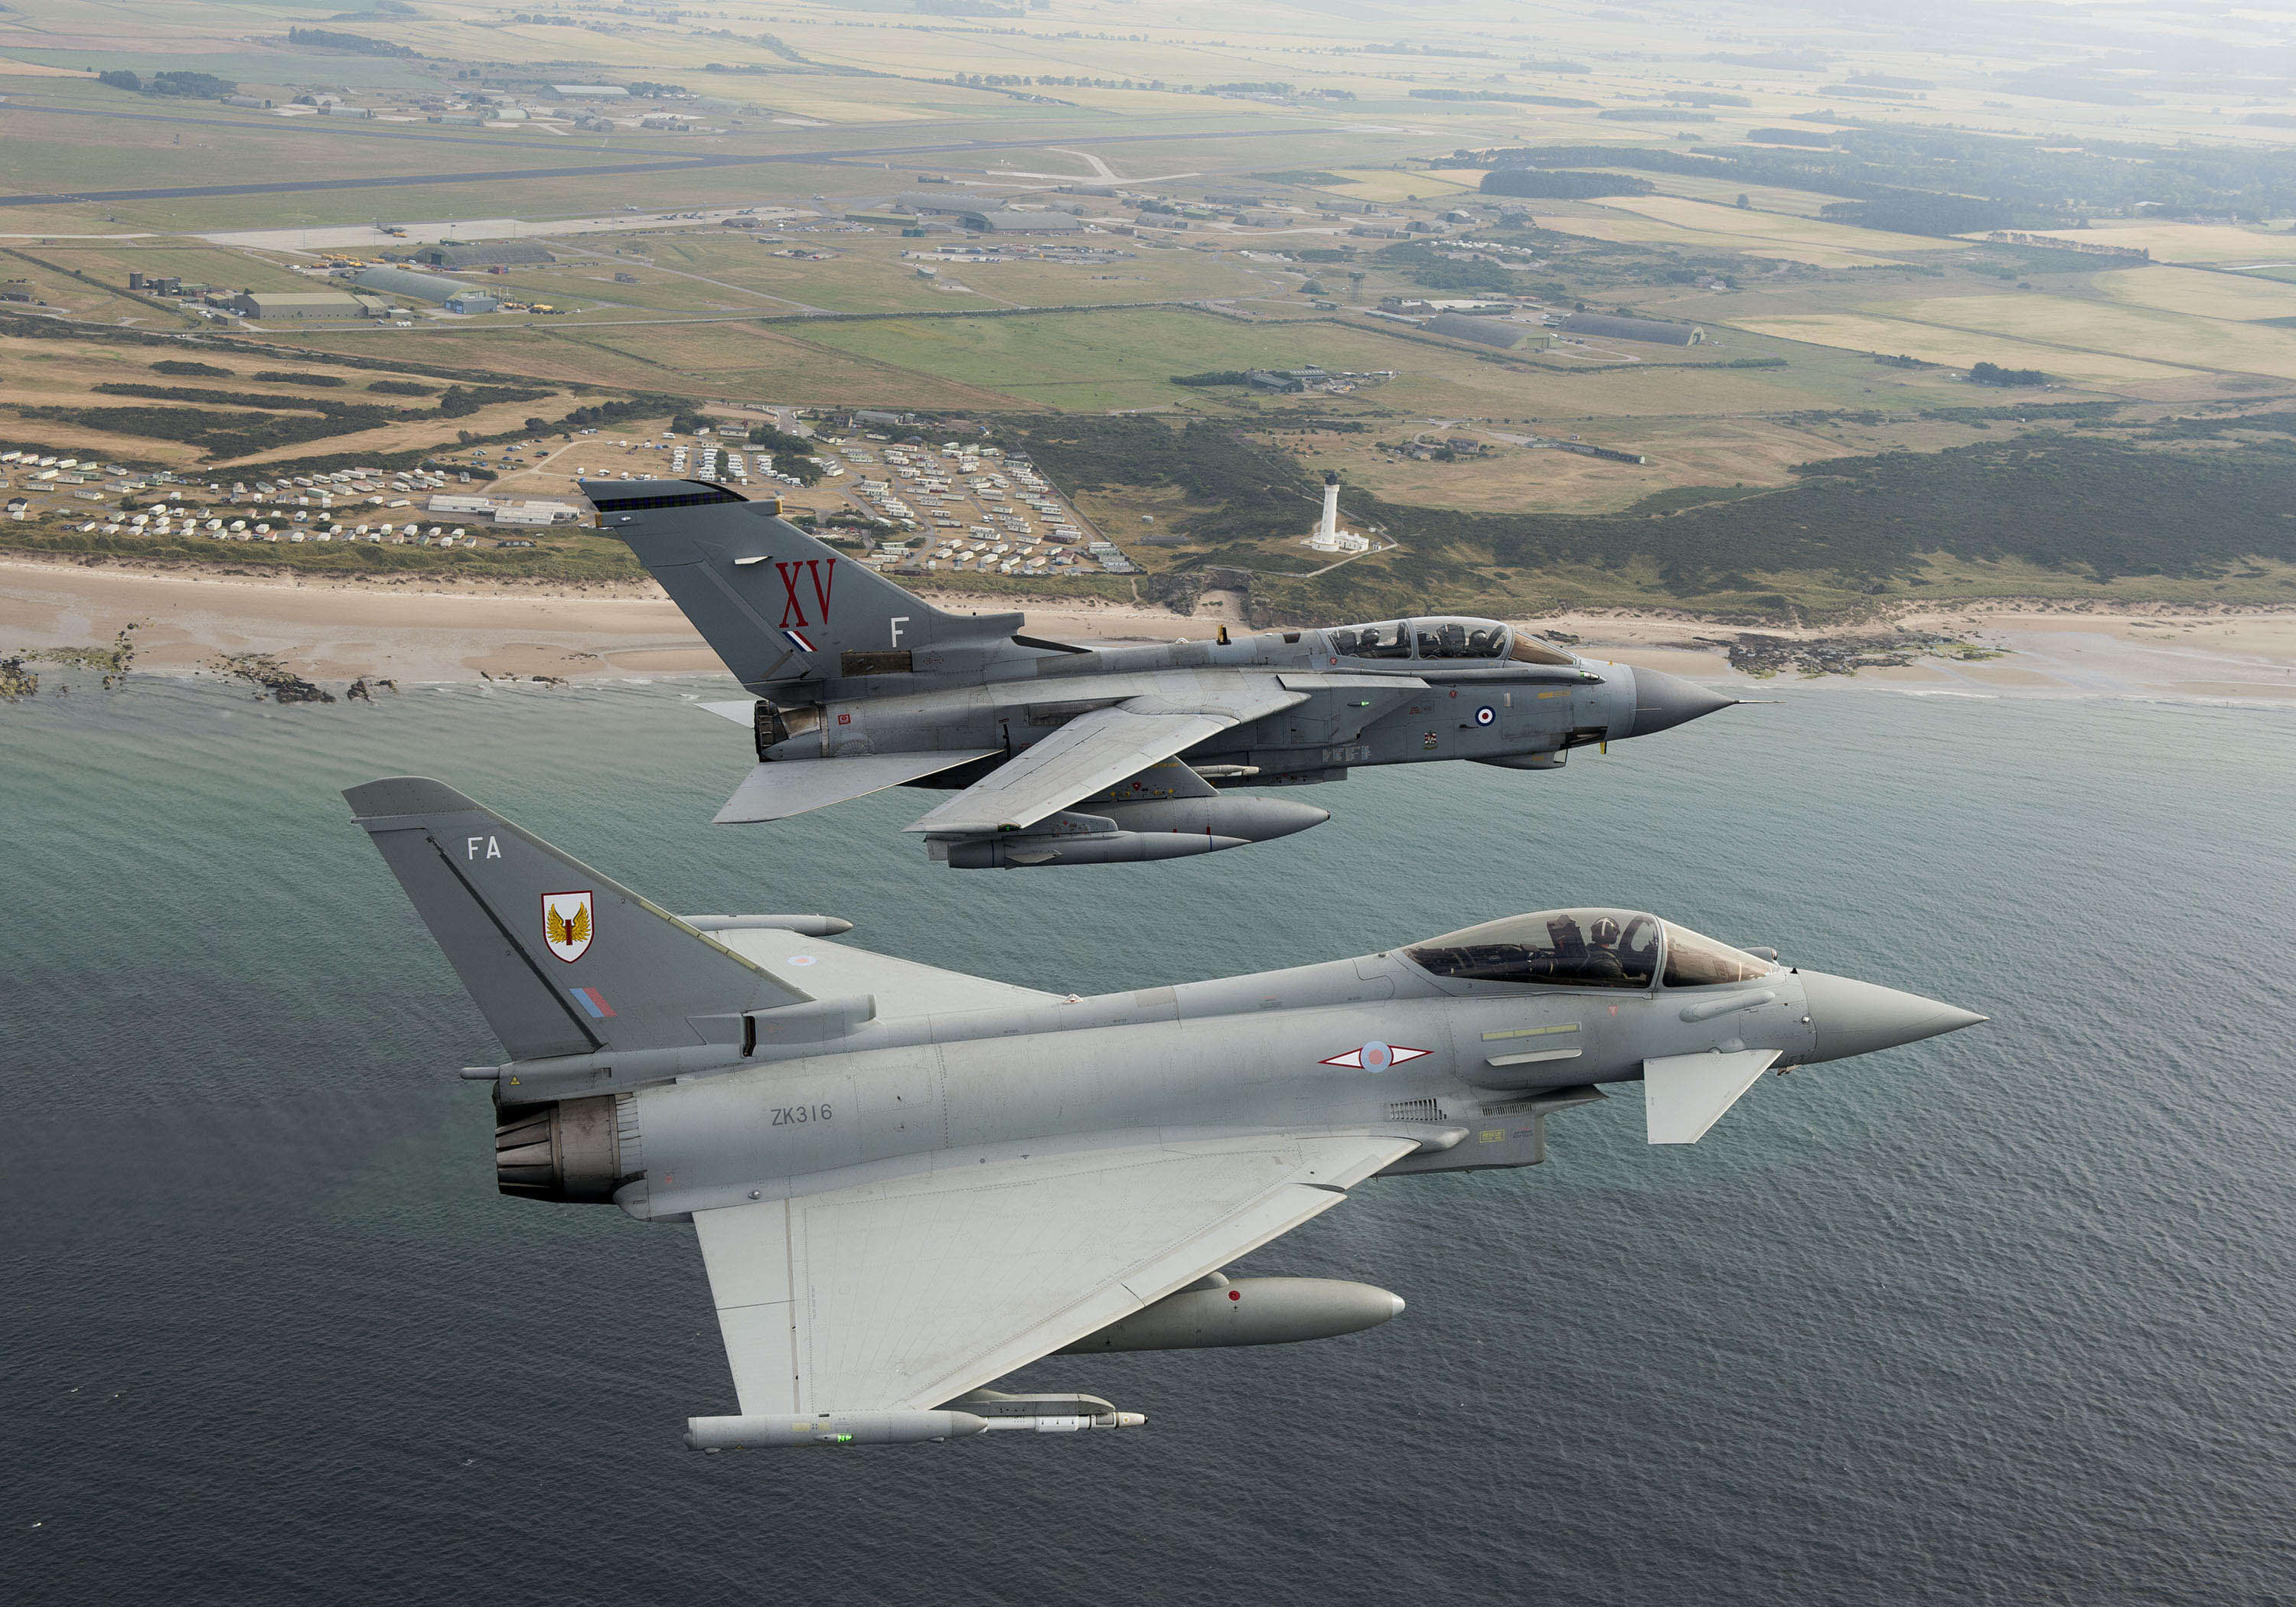 RAF Lossiemouth Typhoons have been involved in three recent incidents